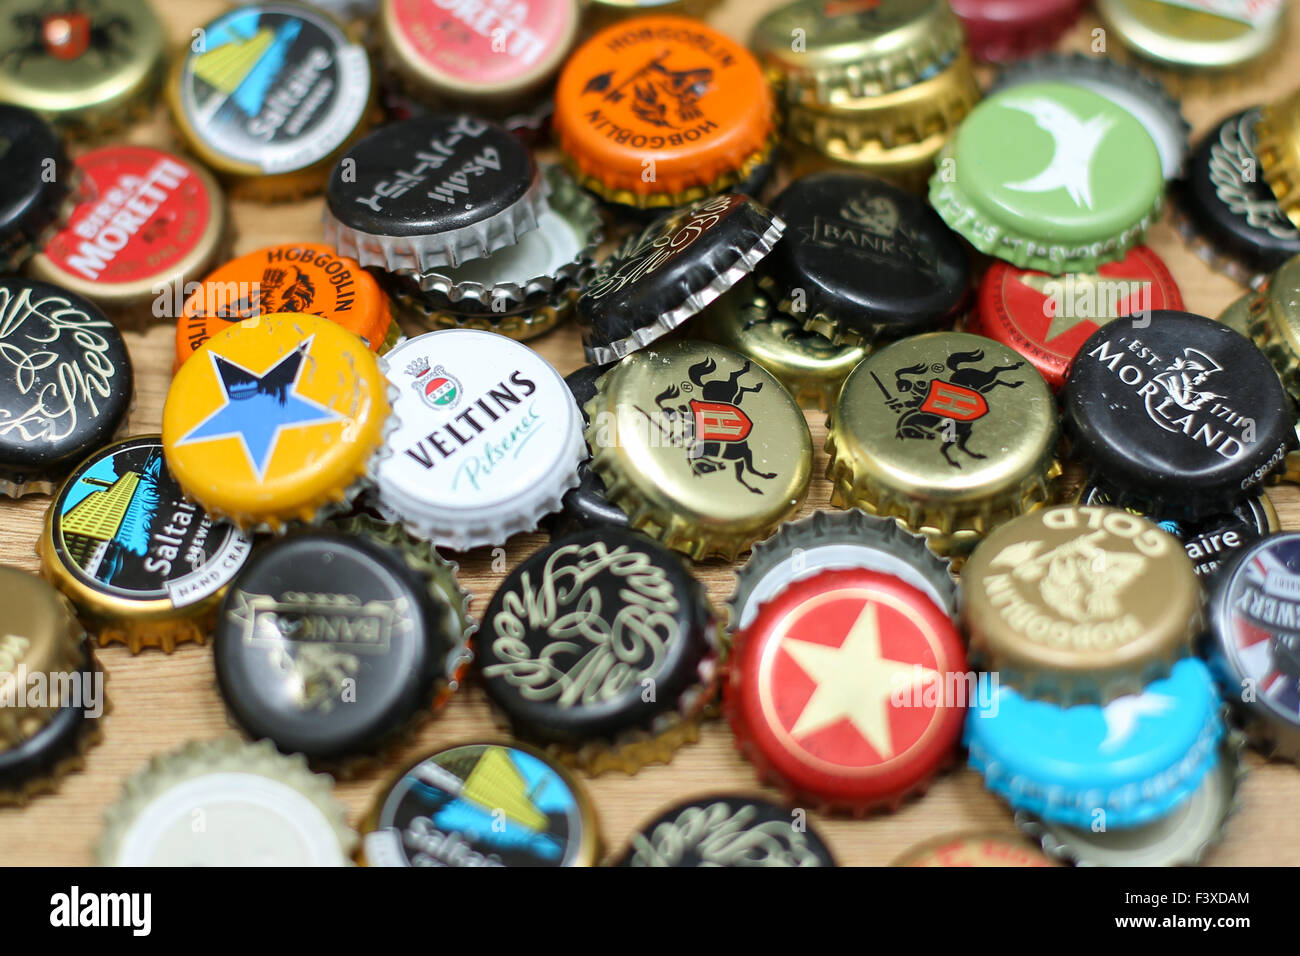 A collection of different caps from bottled beers. - Stock Image